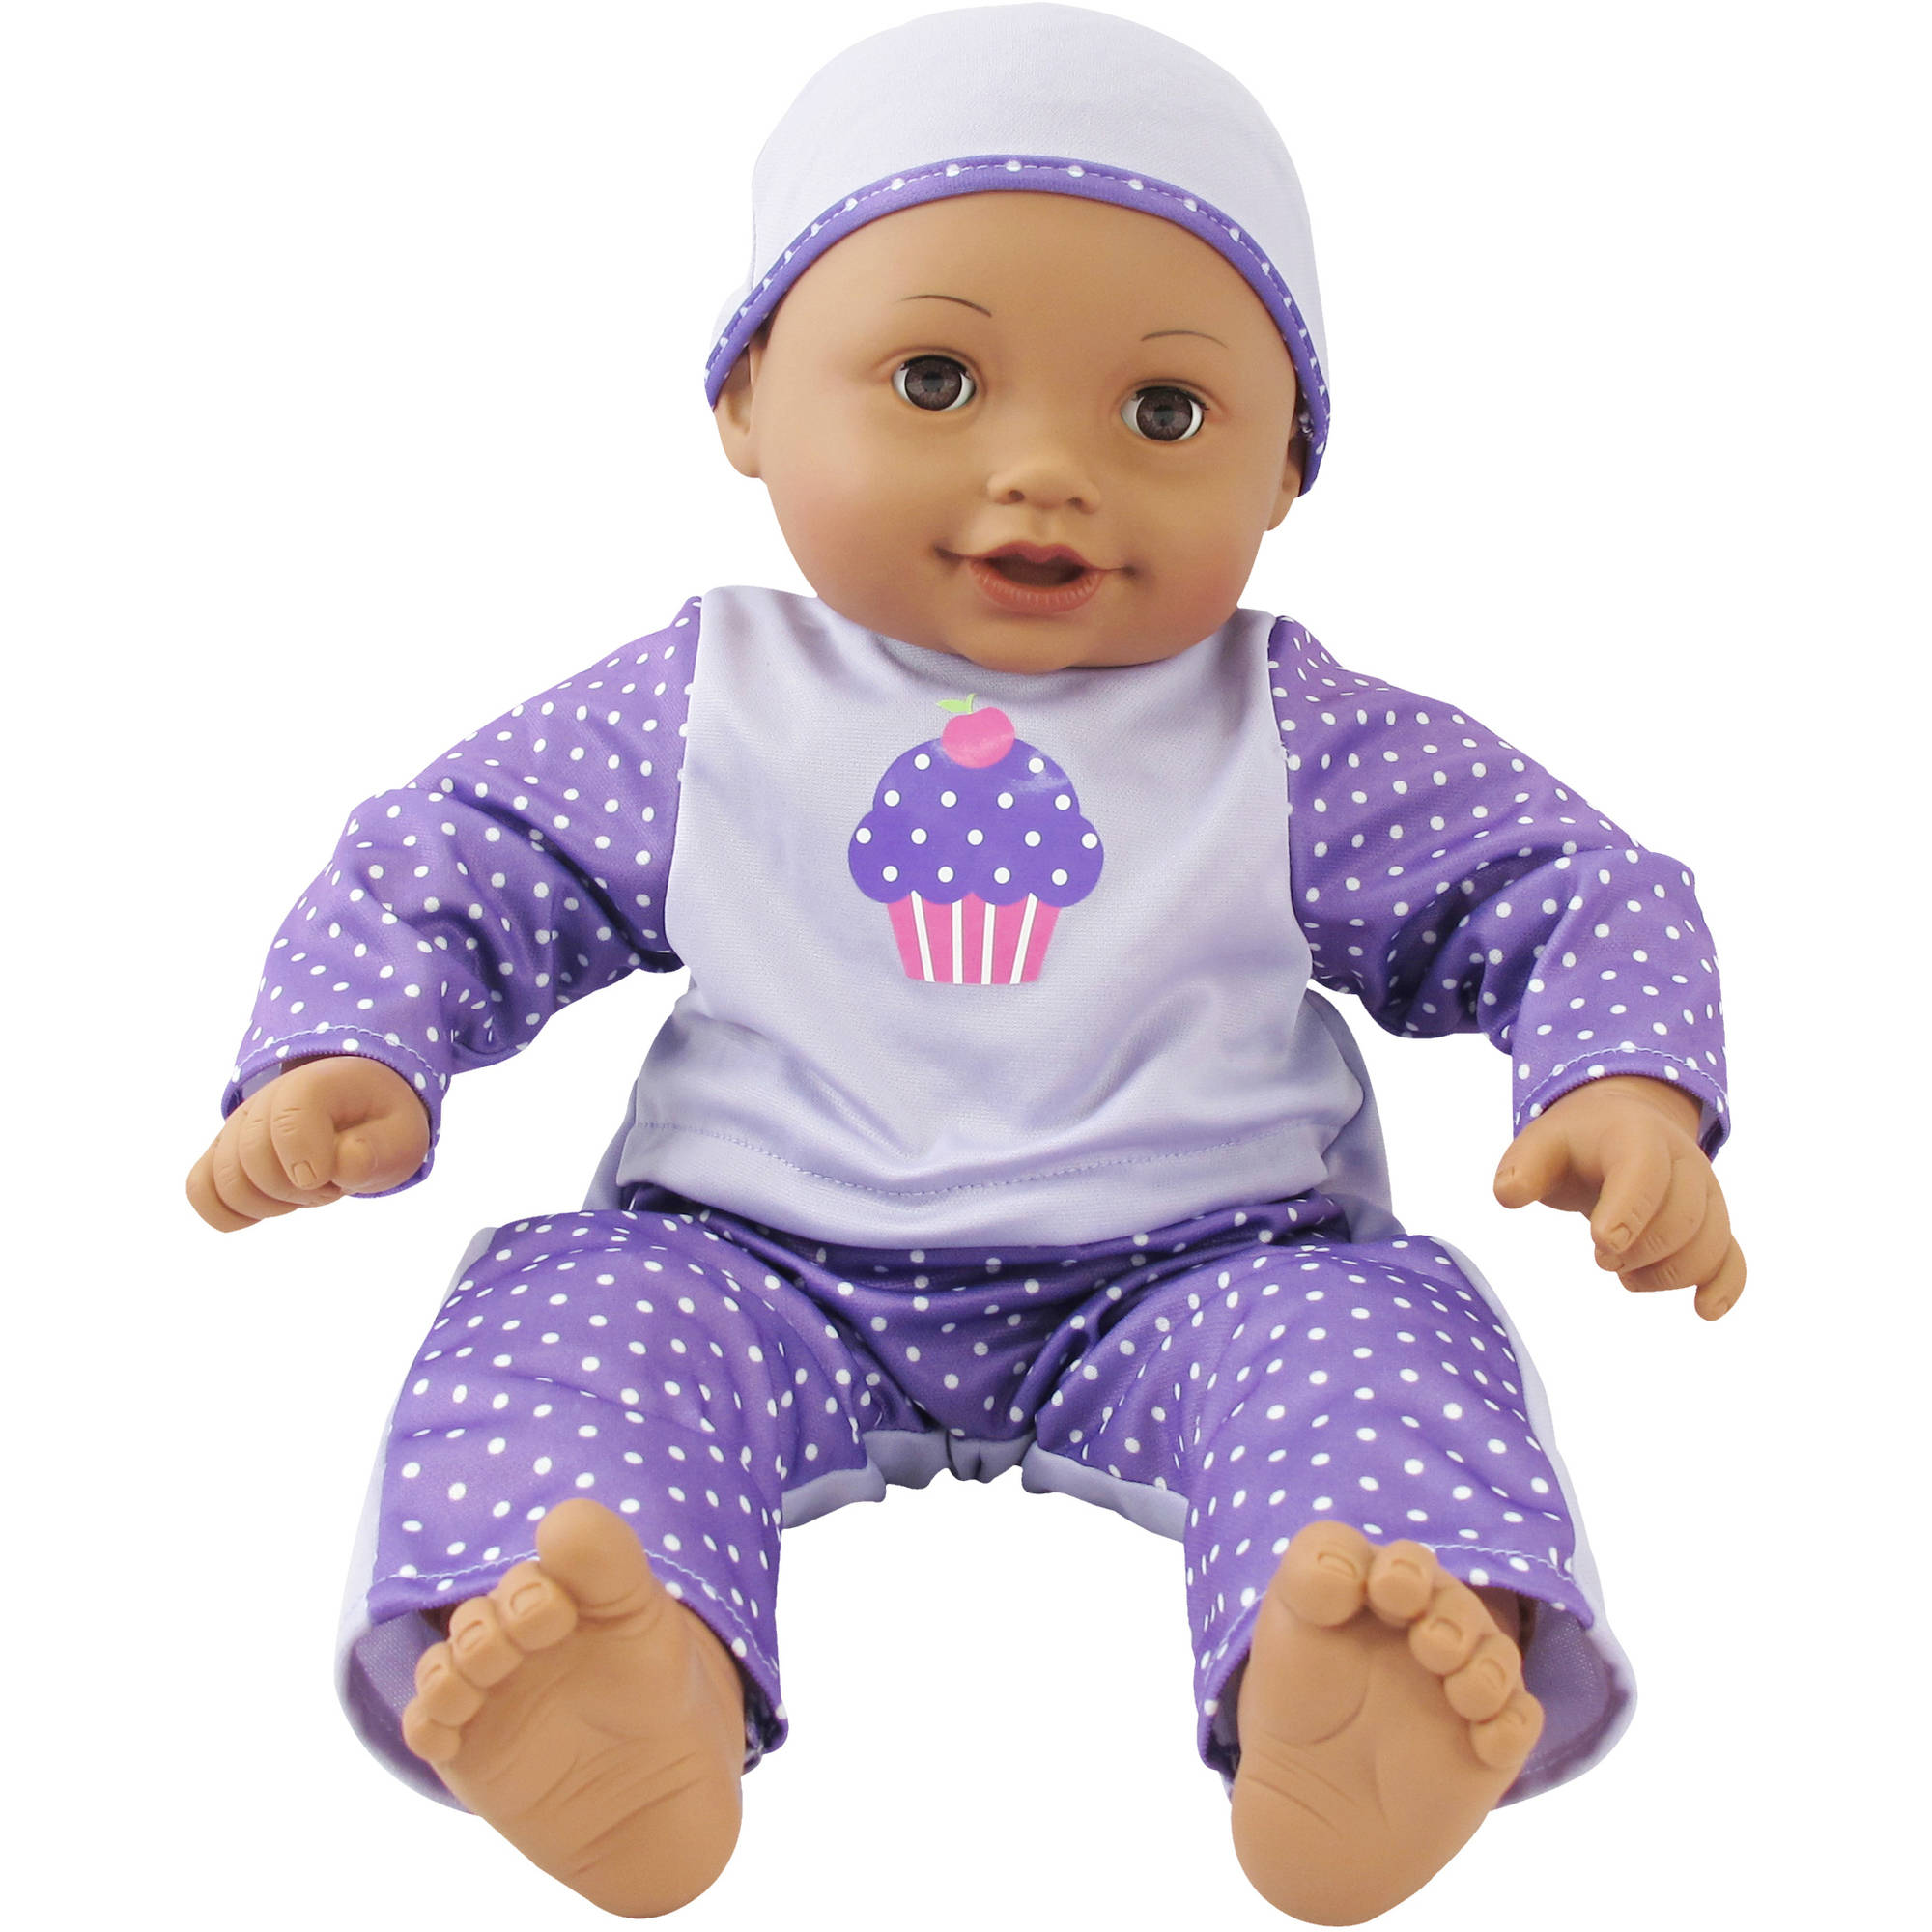 My Sweet Love Soft Baby Doll, African American with Purple Outfit